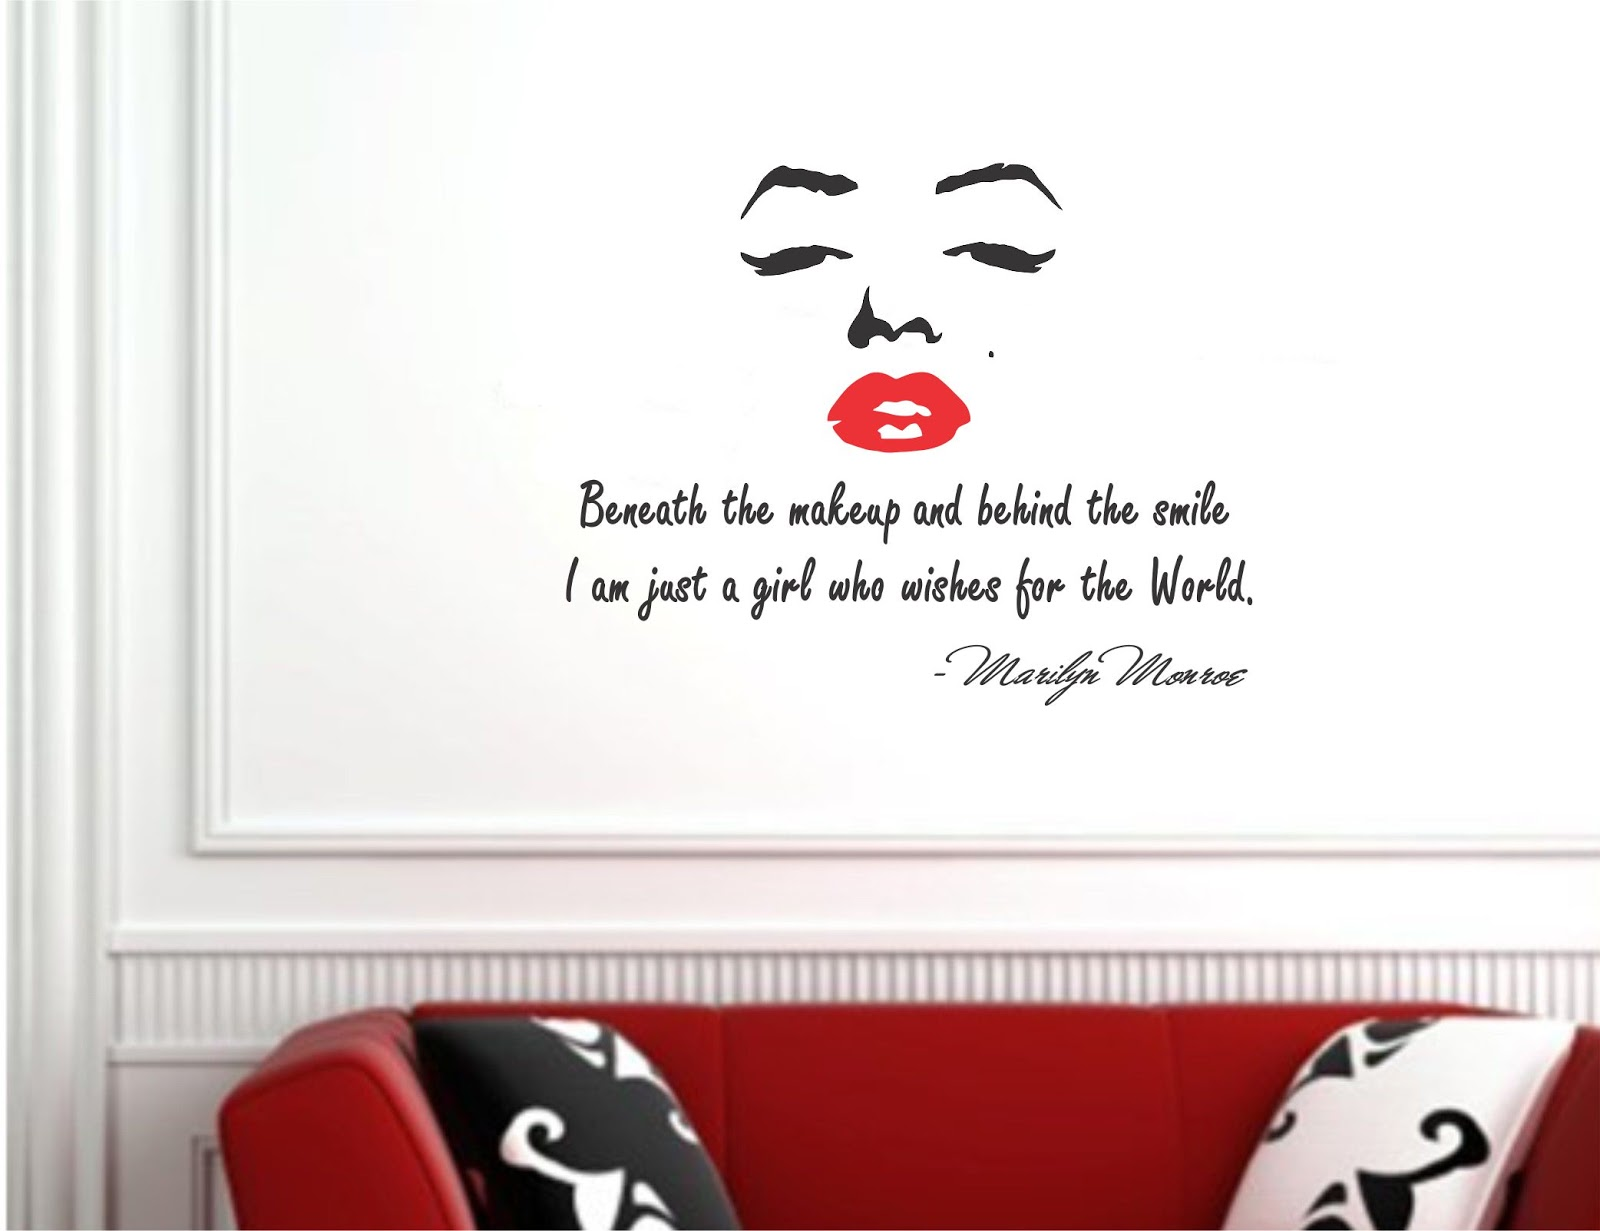 Quotes by makeup artists quotesgram for Makeup artist quotes for business cards